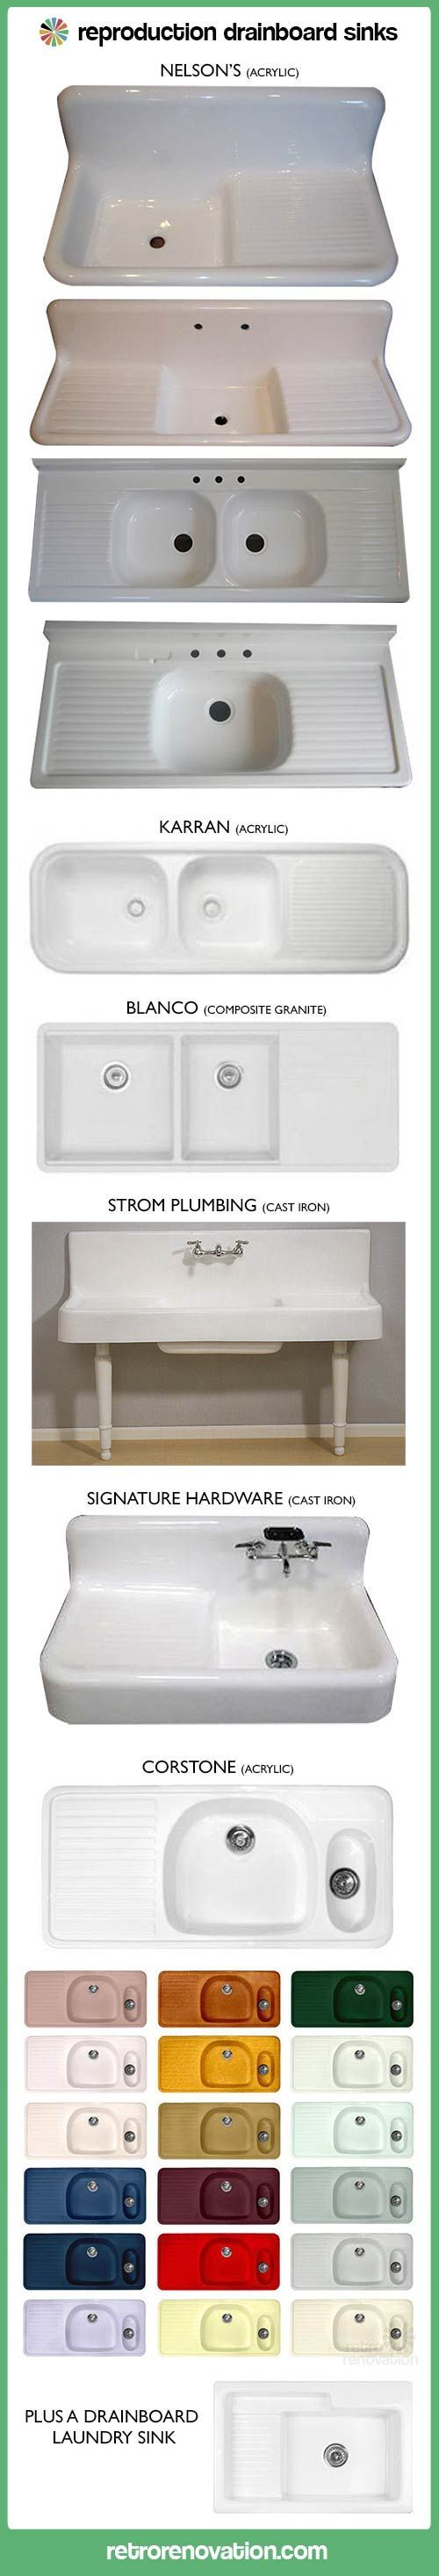 vintage kitchen sink Five new options for farmhouse kitchen drainboard sinks including a design with 36 colors